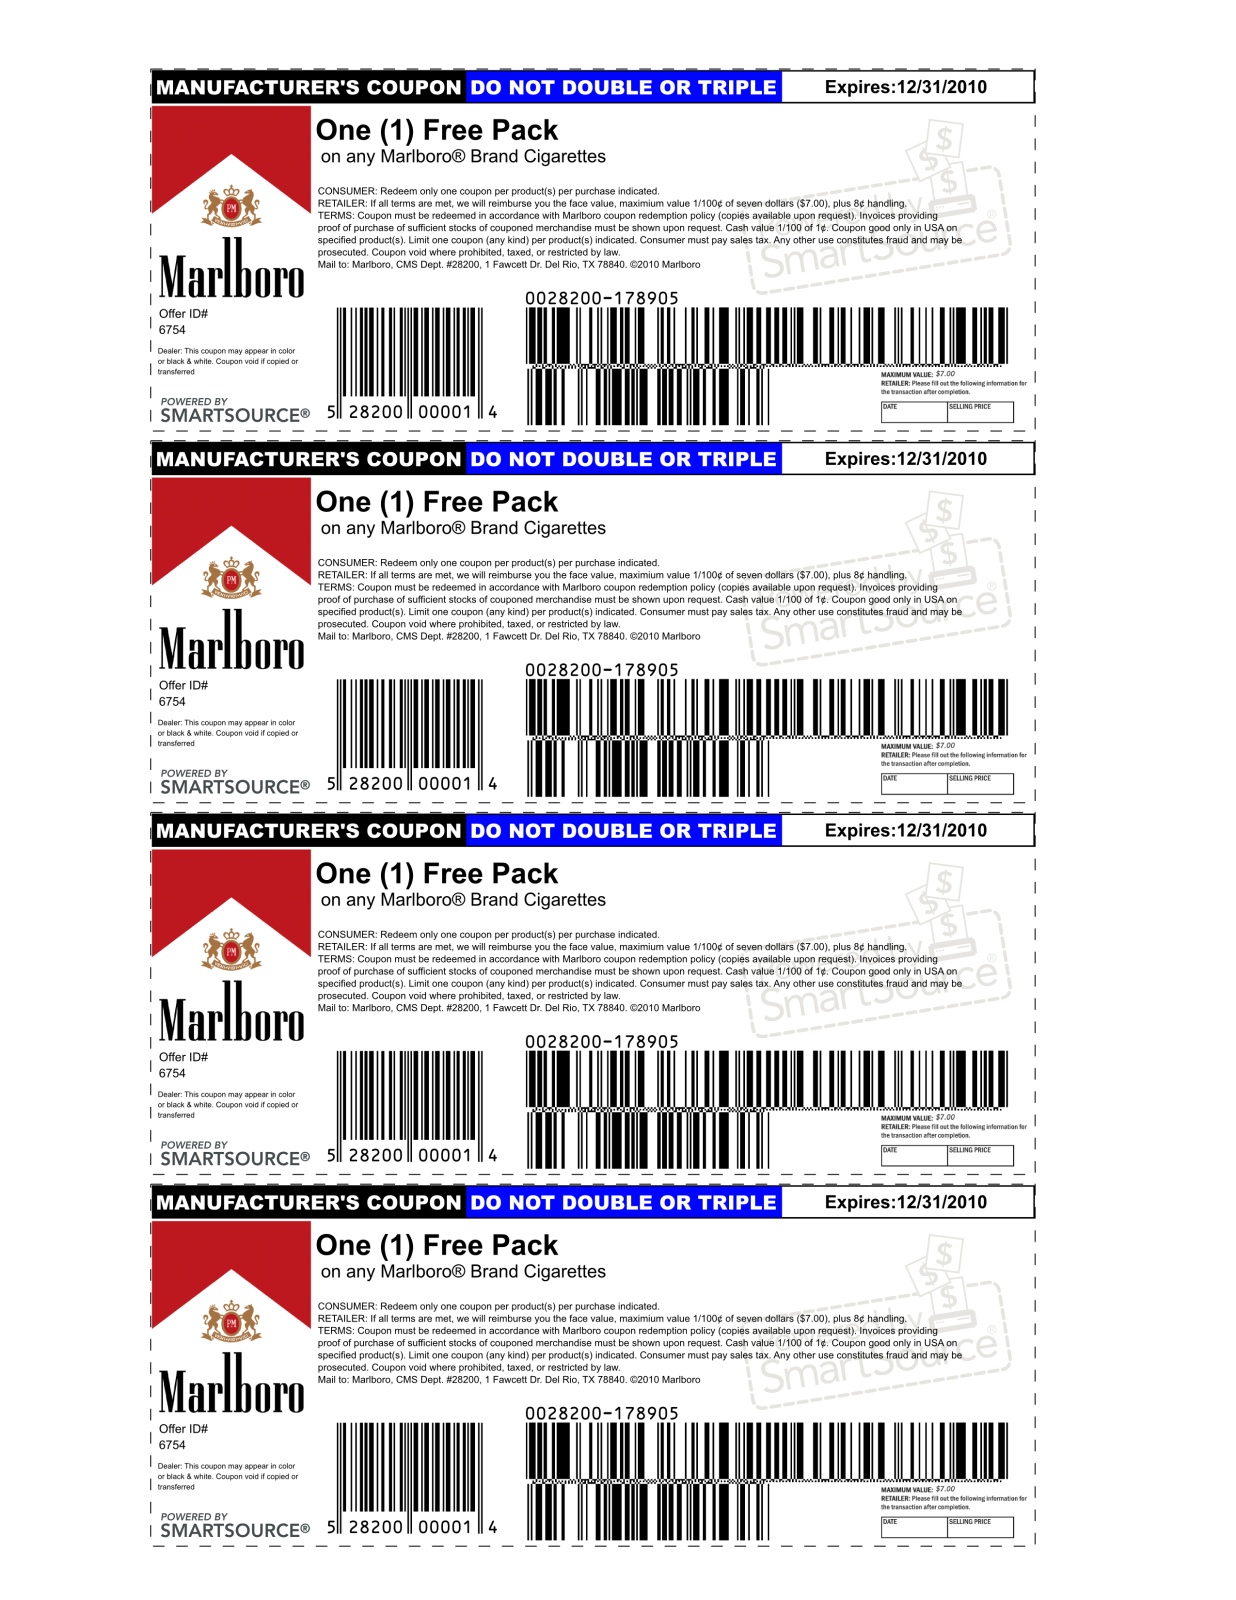 marlboro coupons printable 2013 is using a possibly fake coupon illegal bf3s forums